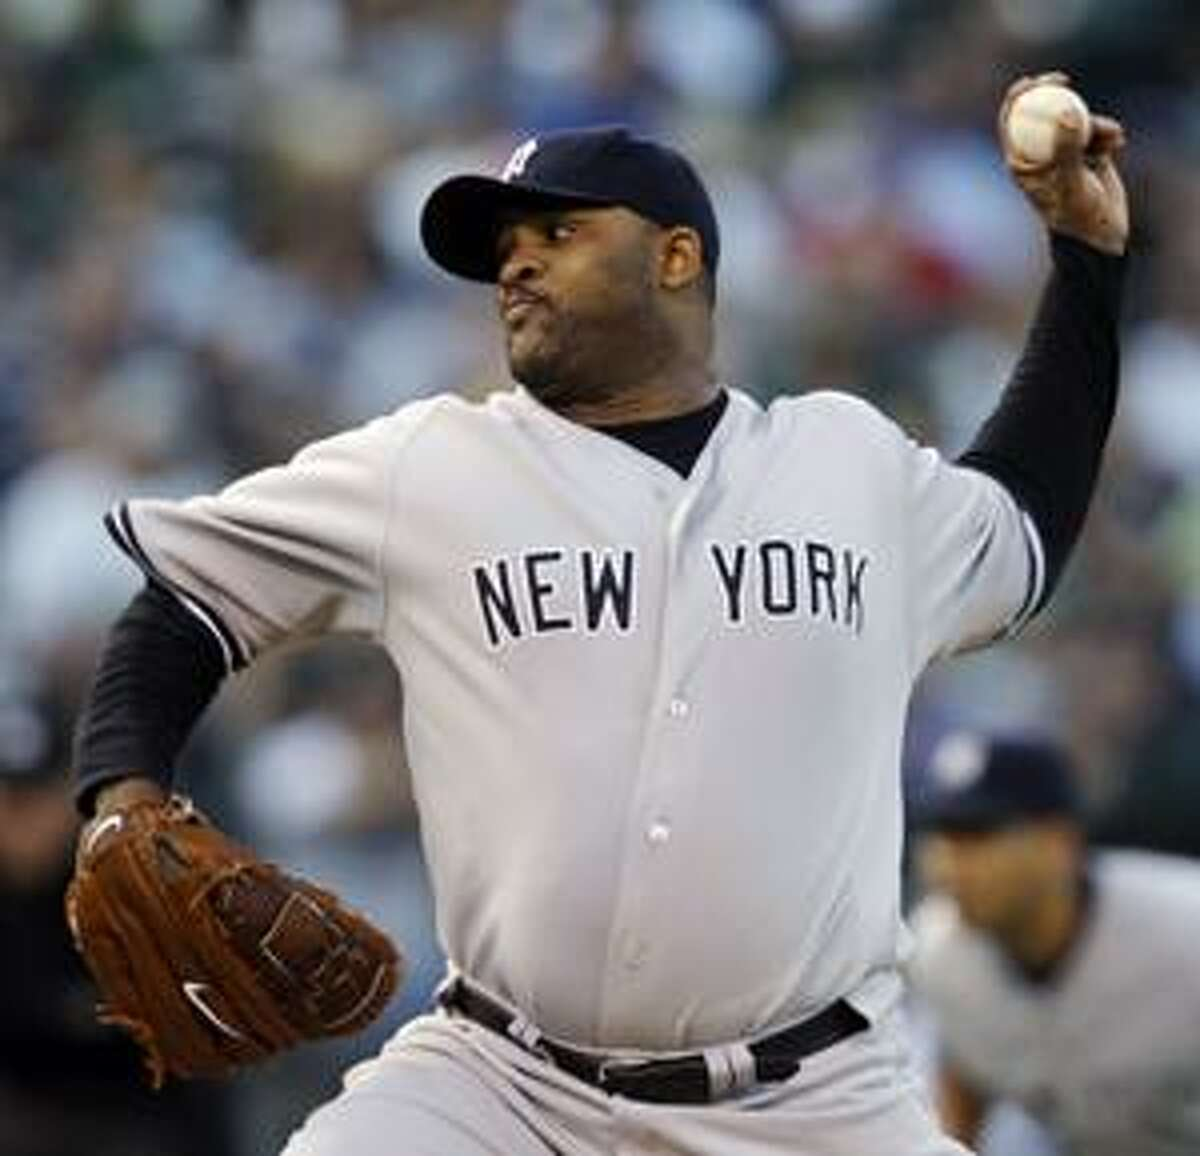 AP New York Yankees pitcher CC Sabathia works against the Oakland Athletics in the first inning of a game Tuesday in Oakland, Calif.